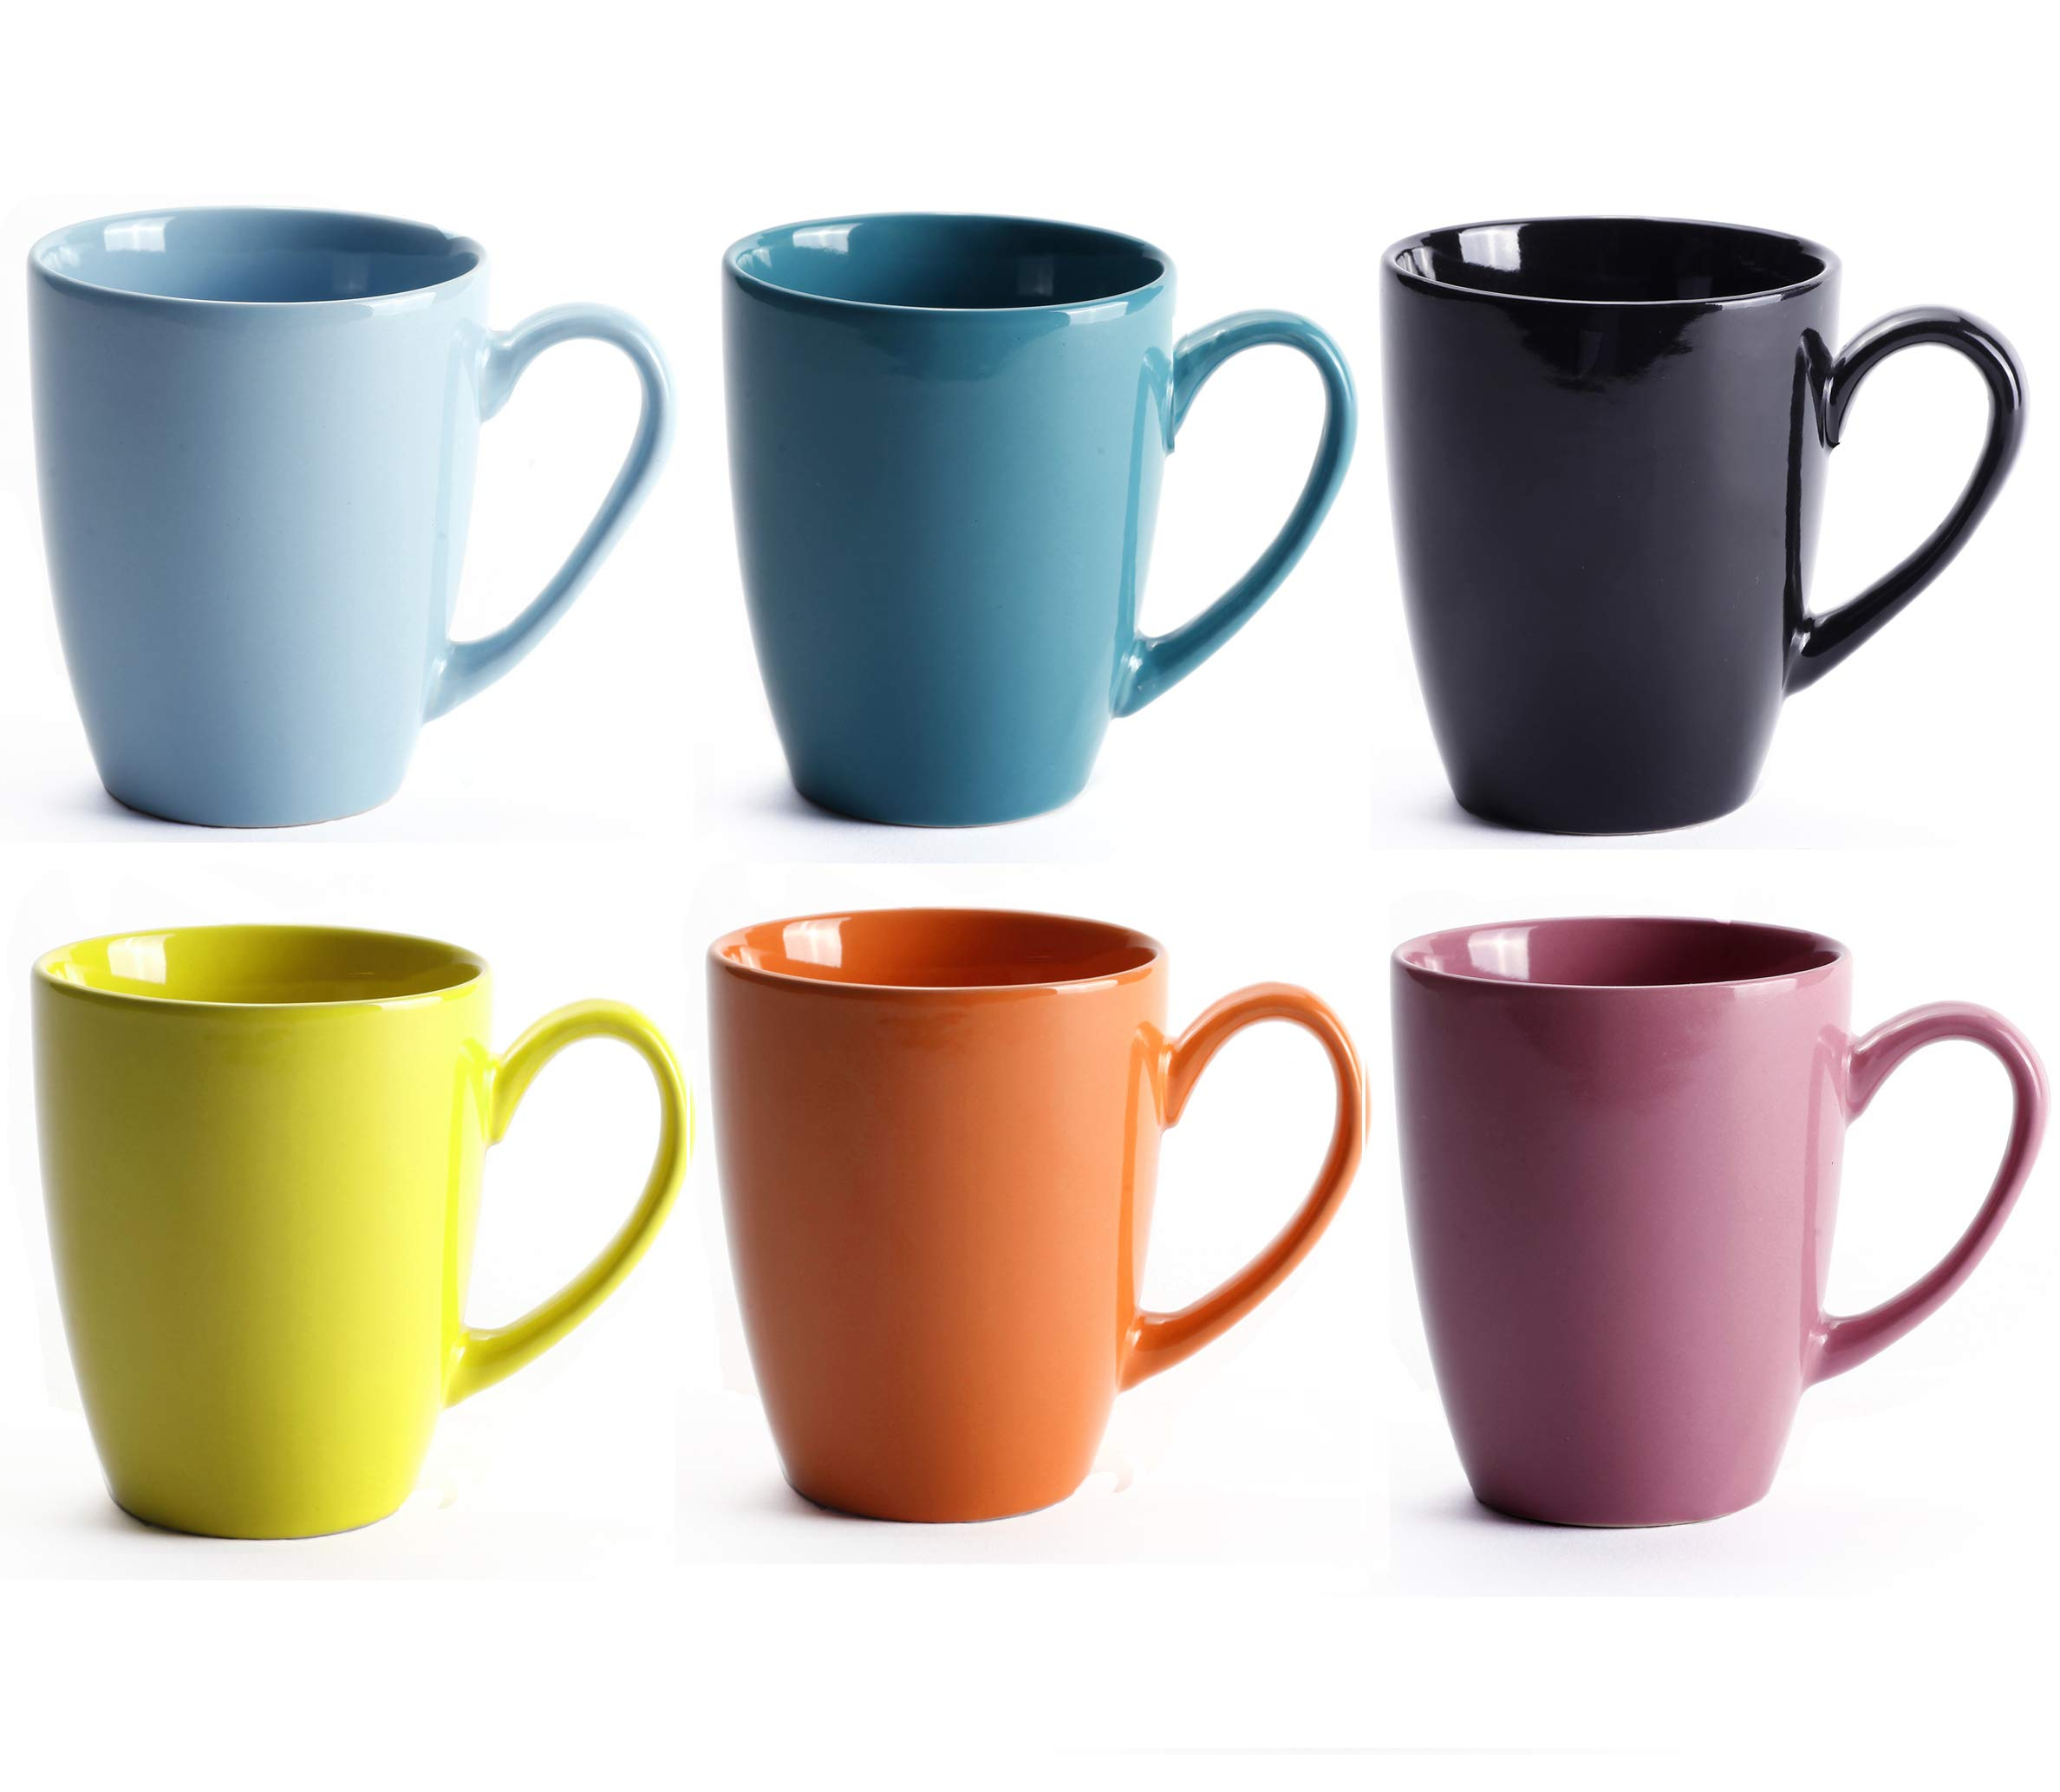 LEANDALE 12 OZ Ceramic Coffee Mug Tea Milk Cup Set of 6,Multi Solid Colour (Multi-6 pcs)